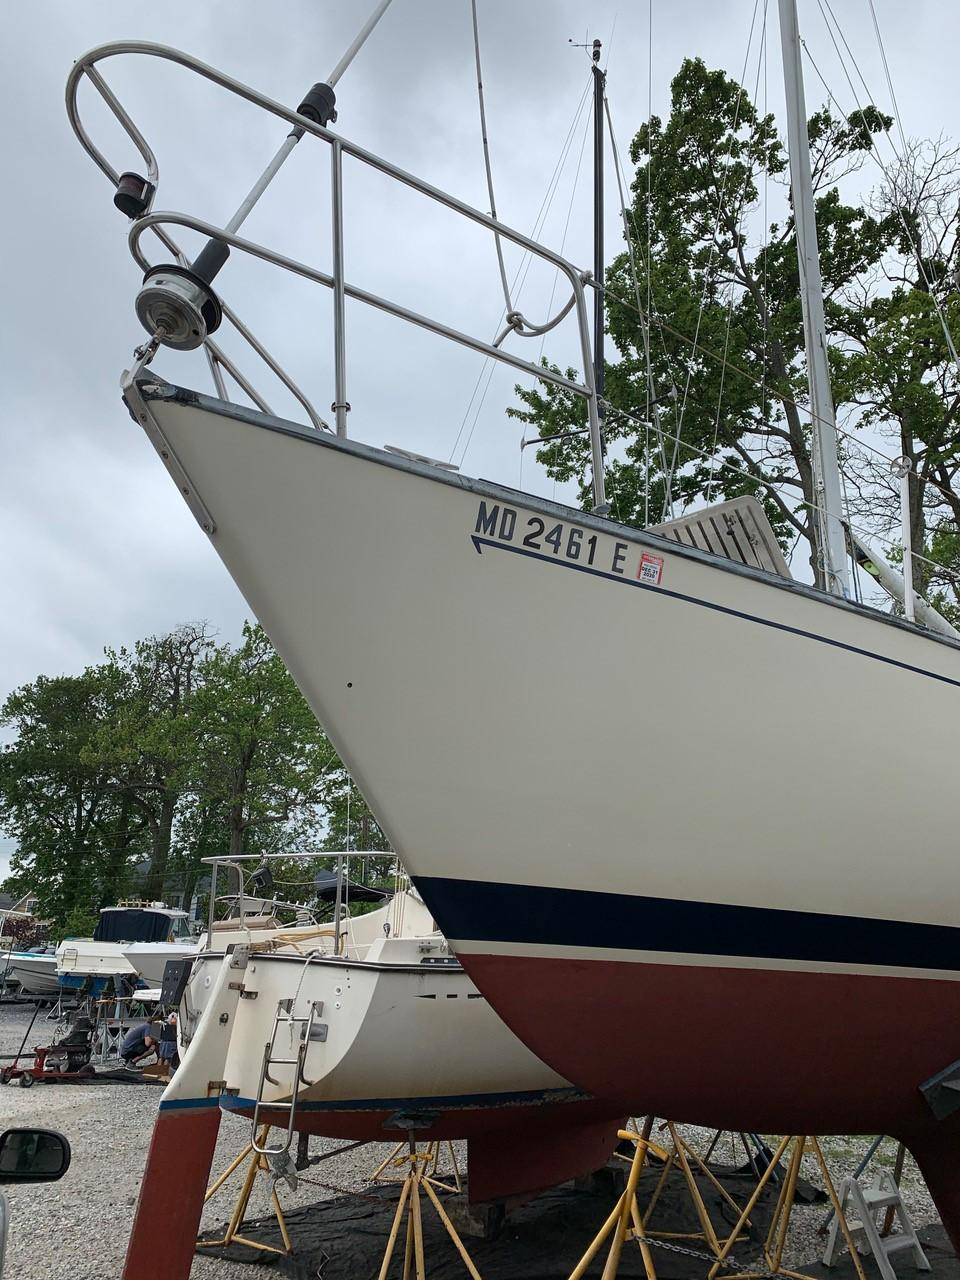 M 6126 RD Knot 10 Yacht Sales